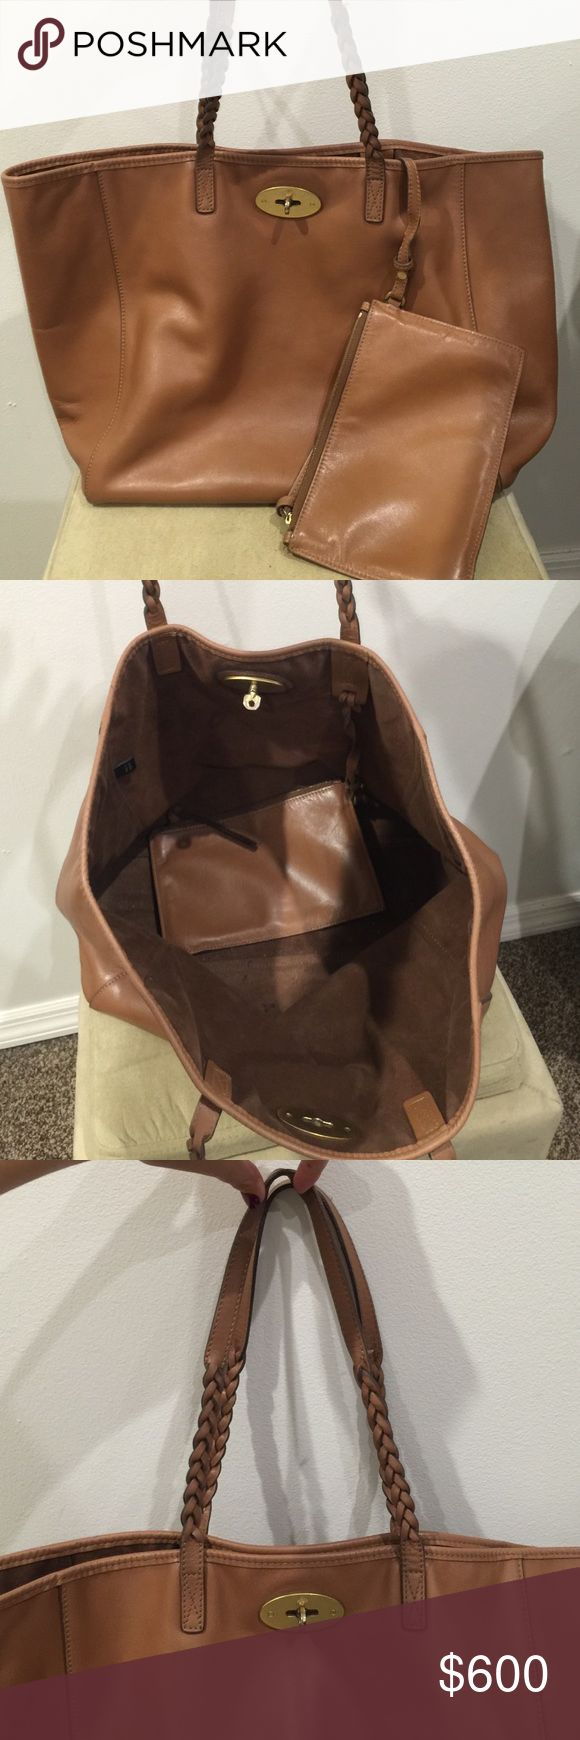 """Brown leather Mulberry Dorset tote bag. Lovingly worn authentic brown leather Mulberry bag.  The shoulder straps are braided. The leather is smooth and in excellent condition. The bag was stored in the original dust bag.  The dust bag seen in the picture will accompany the bag when purchased.  This is the Mulberry """"Dorset"""" bag. Mulberry Bags Totes"""